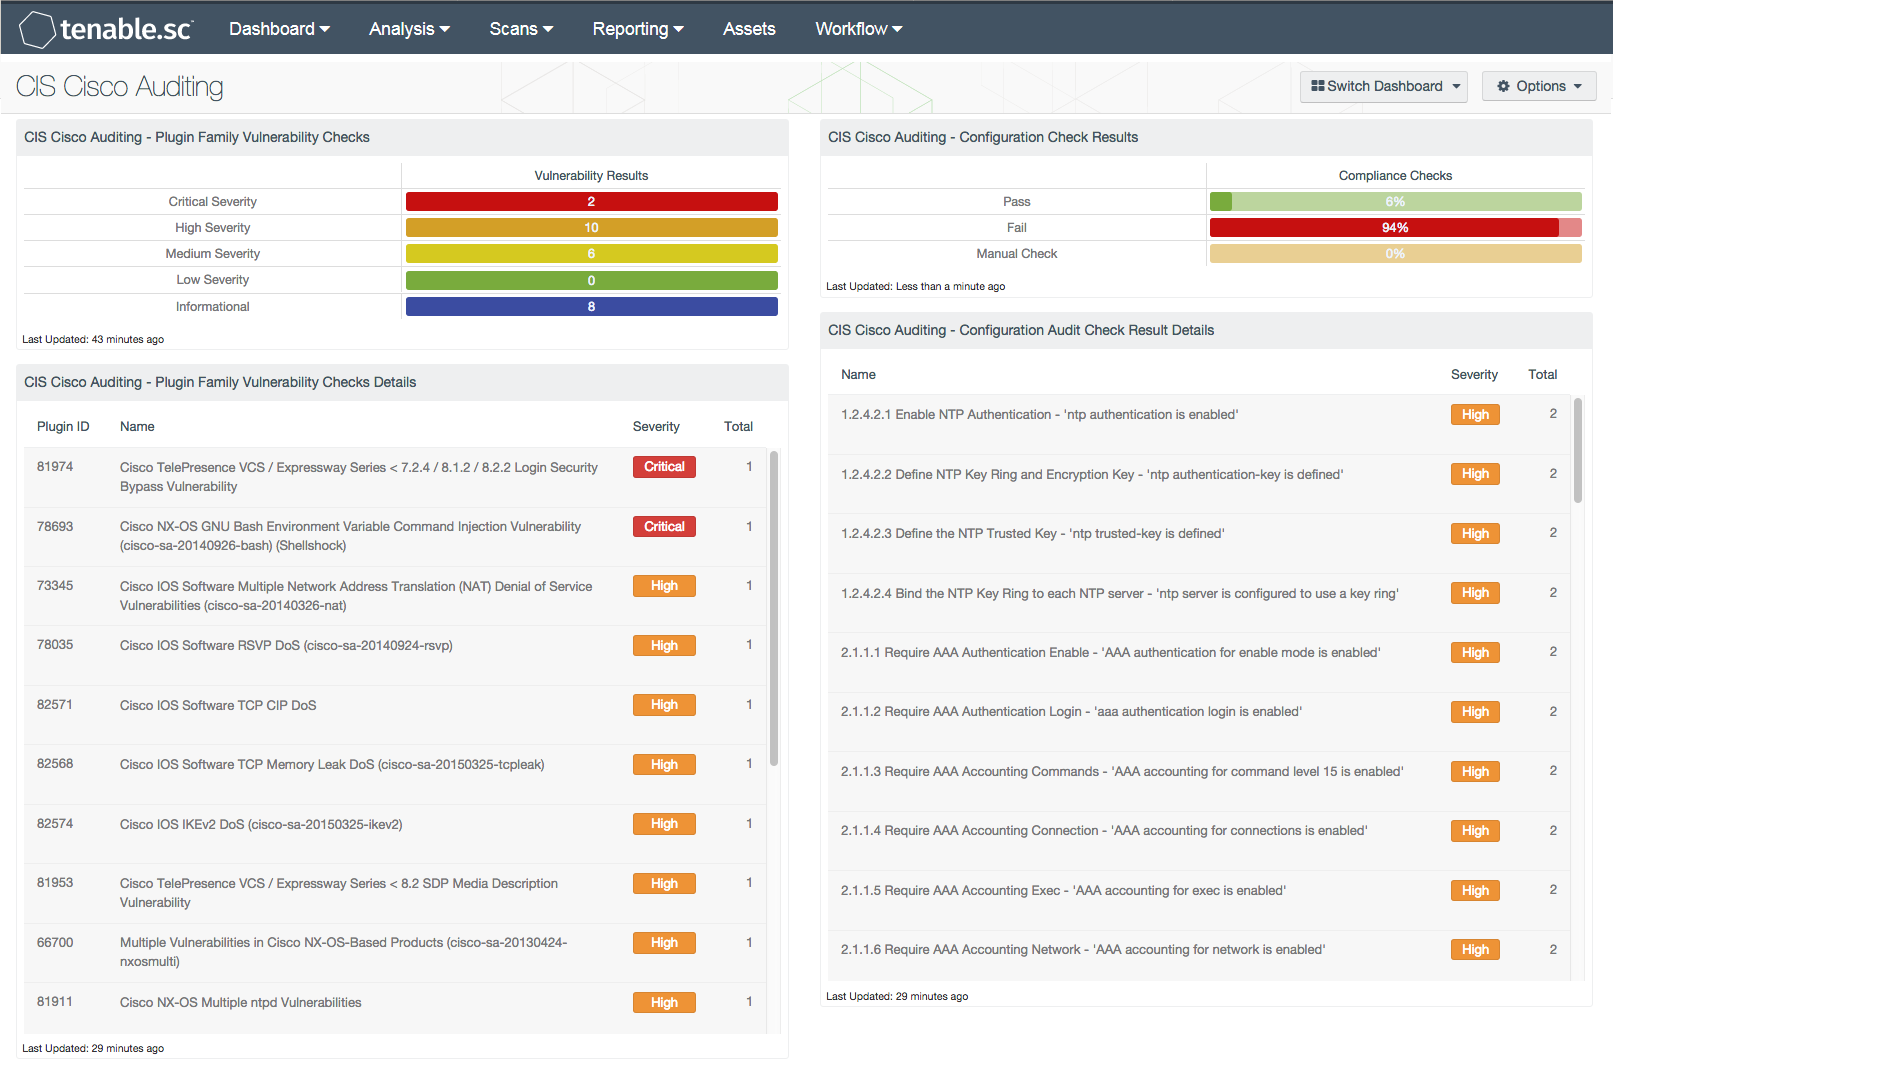 CIS Cisco Auditing - SC Dashboard | Tenable®